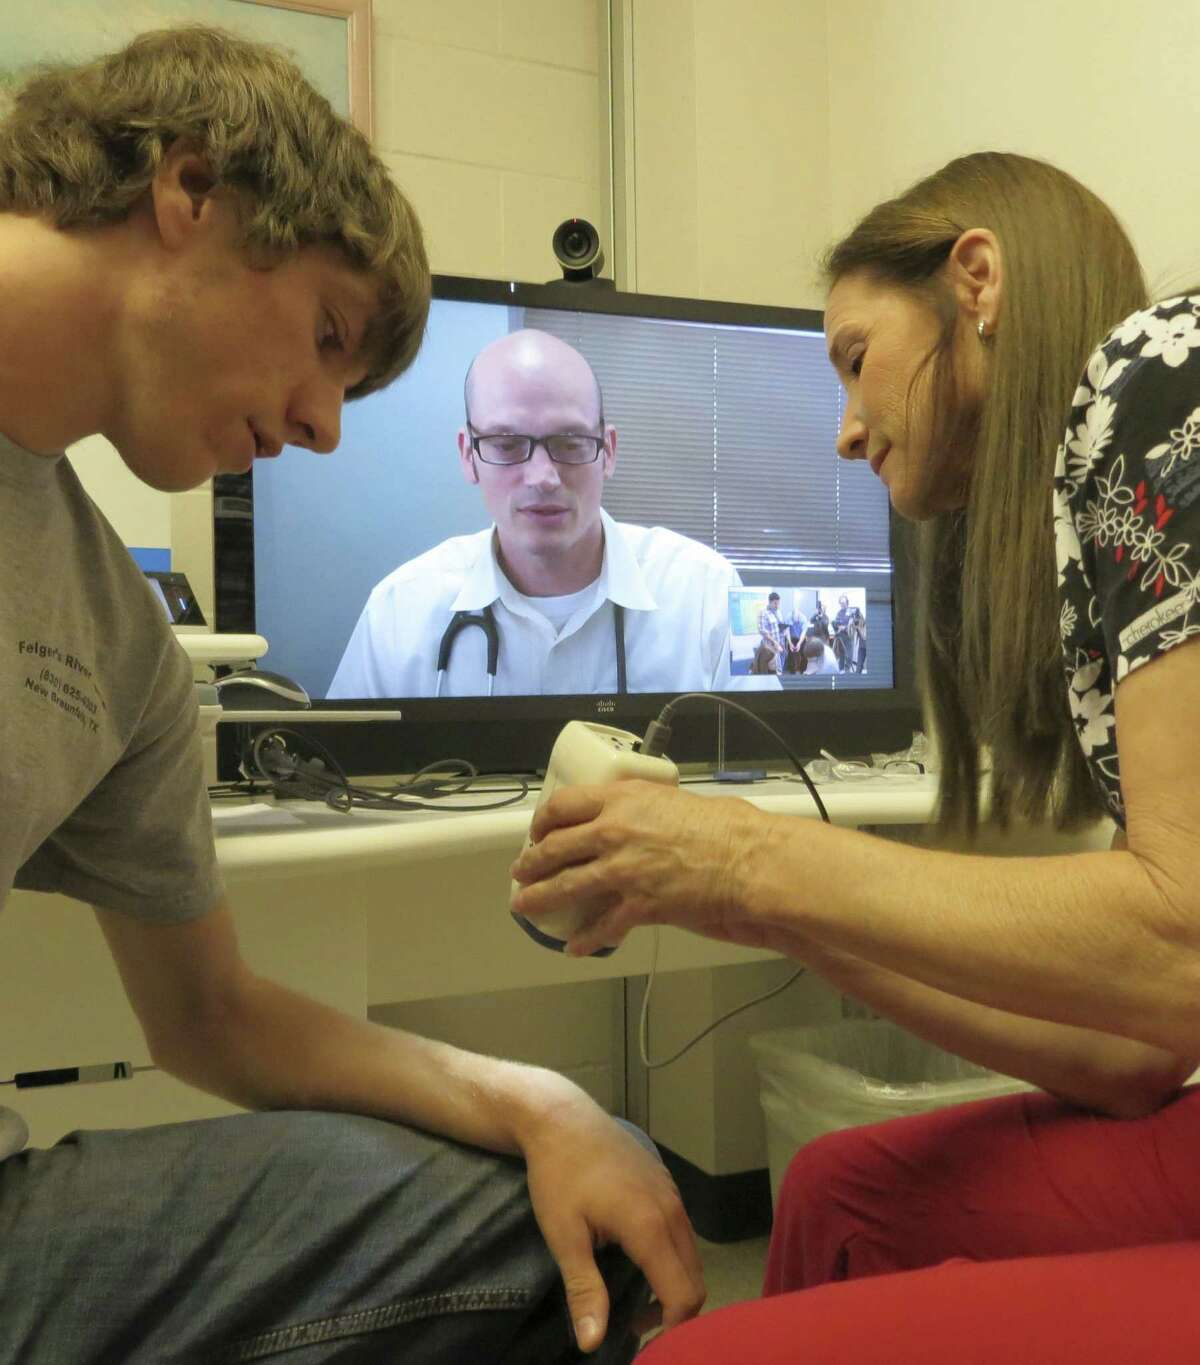 Canyon High School Nurse Regina Smith uses a scope to let Dr. Robert Morin remotely examine a student's arm.